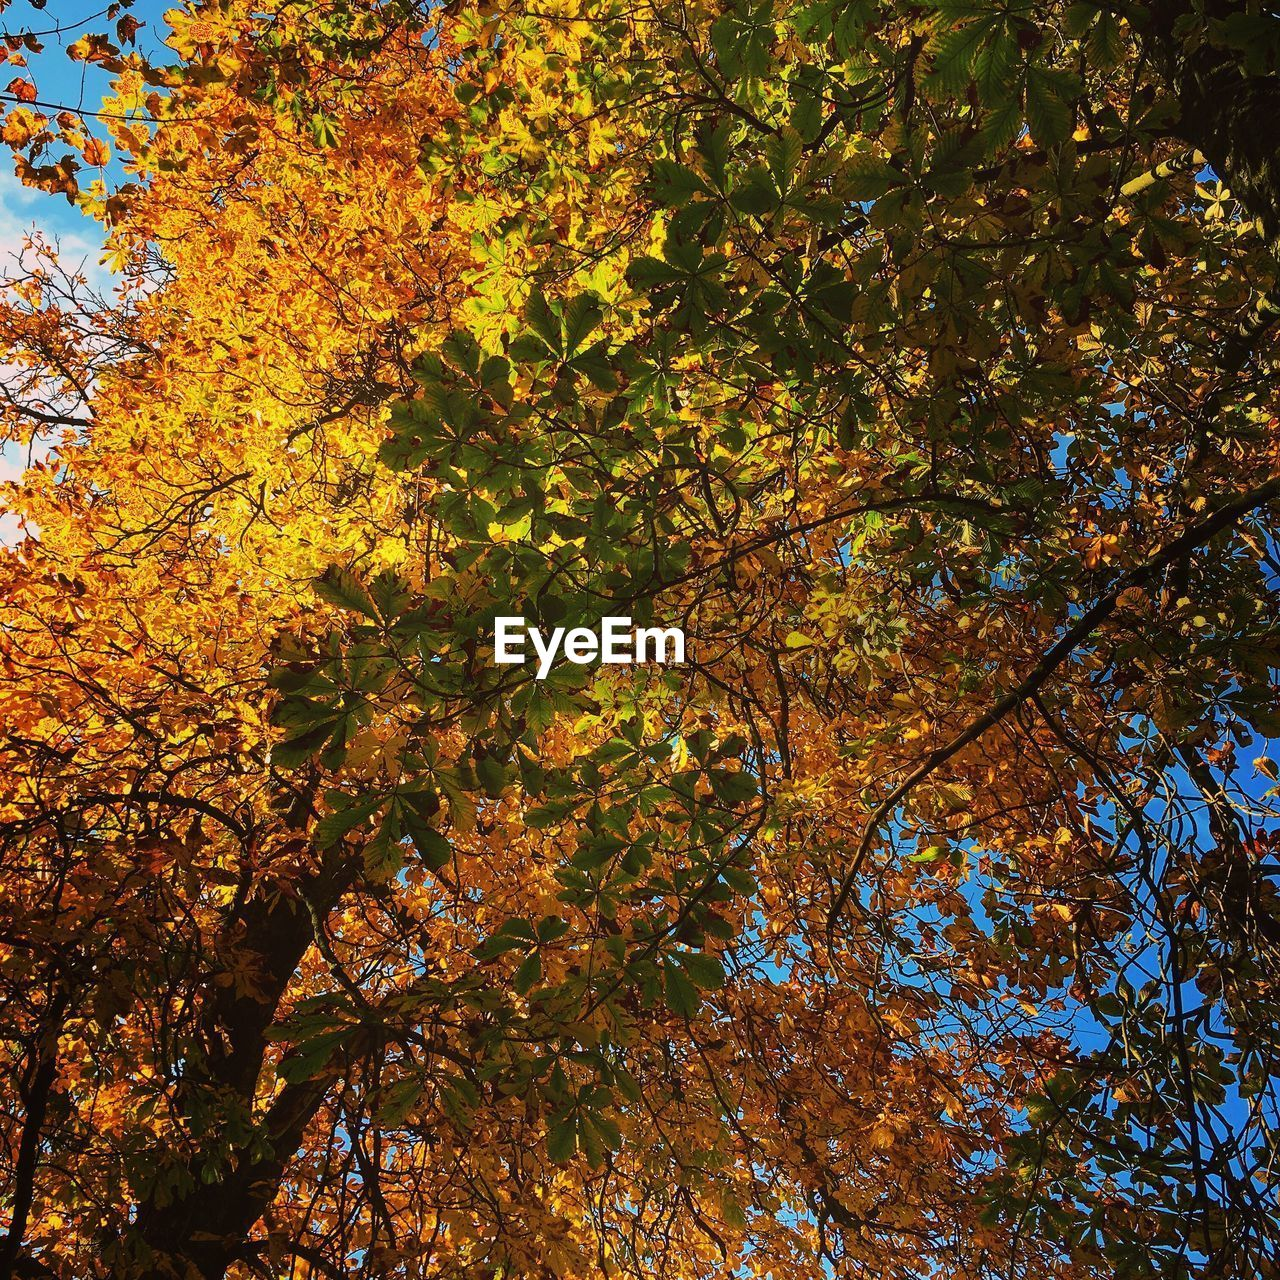 autumn, plant, tree, beauty in nature, growth, change, branch, low angle view, nature, orange color, tranquility, day, no people, plant part, leaf, outdoors, scenics - nature, yellow, land, full frame, maple leaf, tree canopy, fall, natural condition